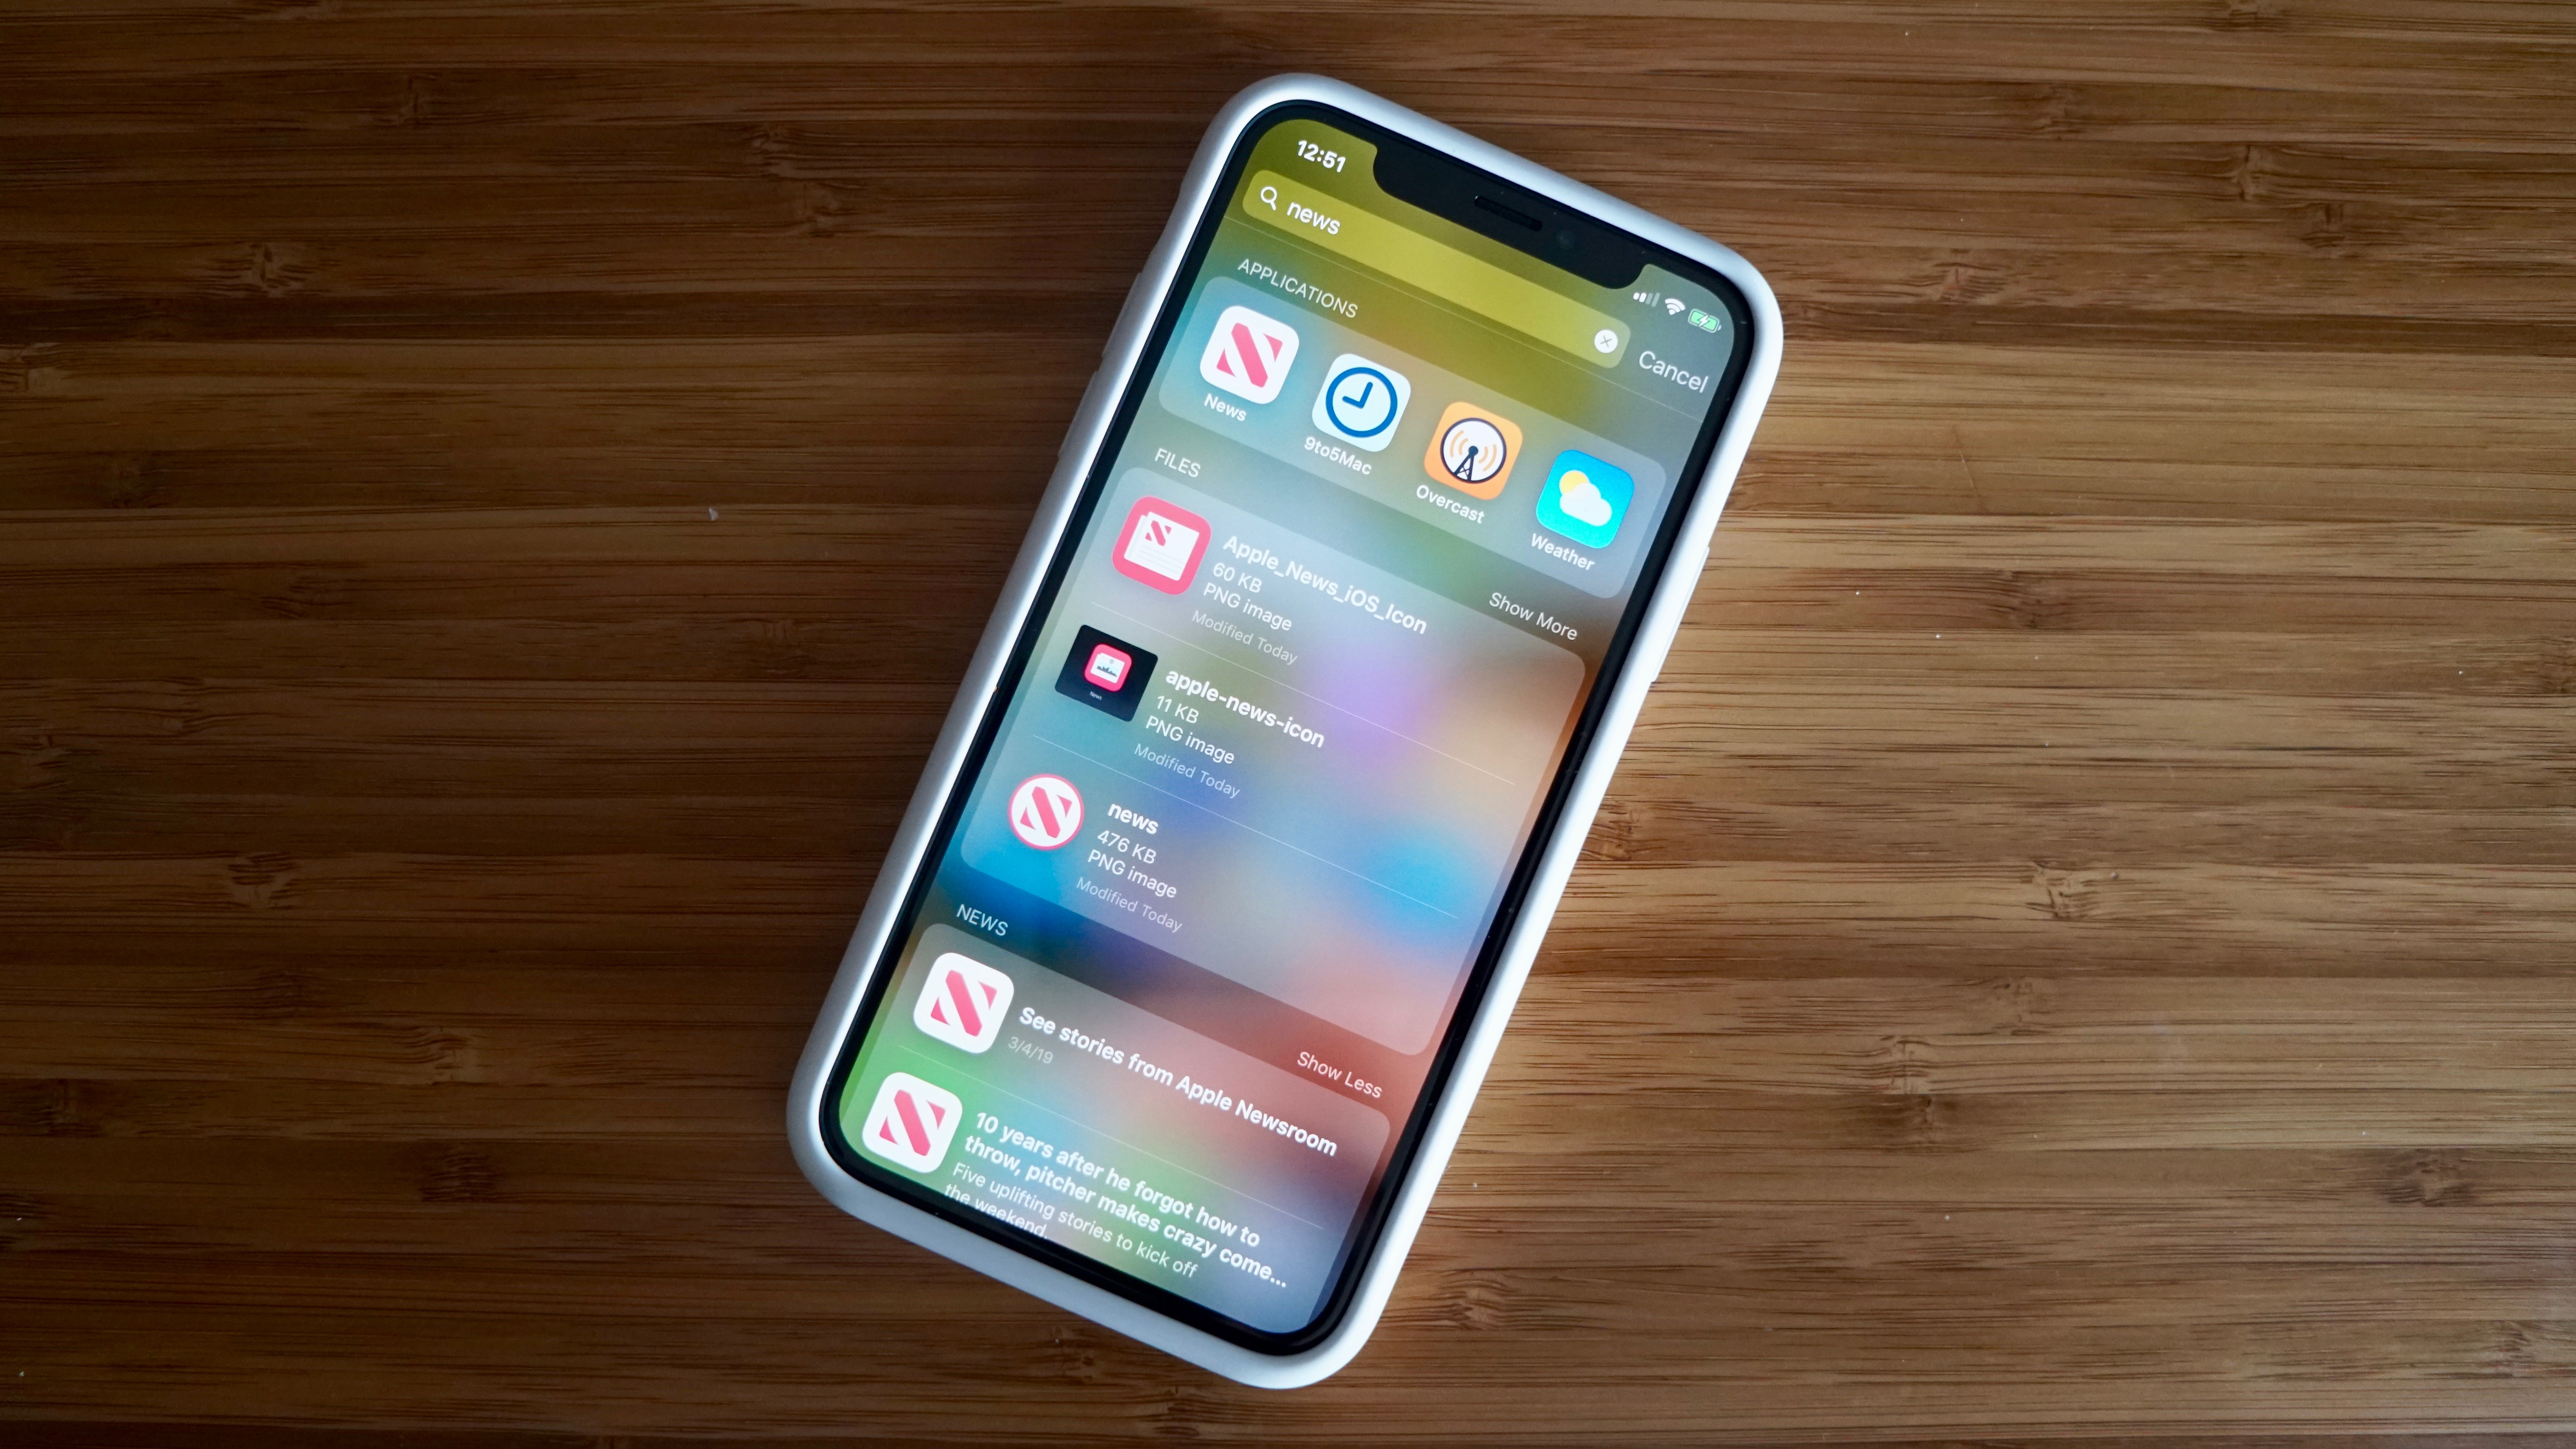 Apple releasing sixth iOS 12.2 developer beta today [U: Now available]